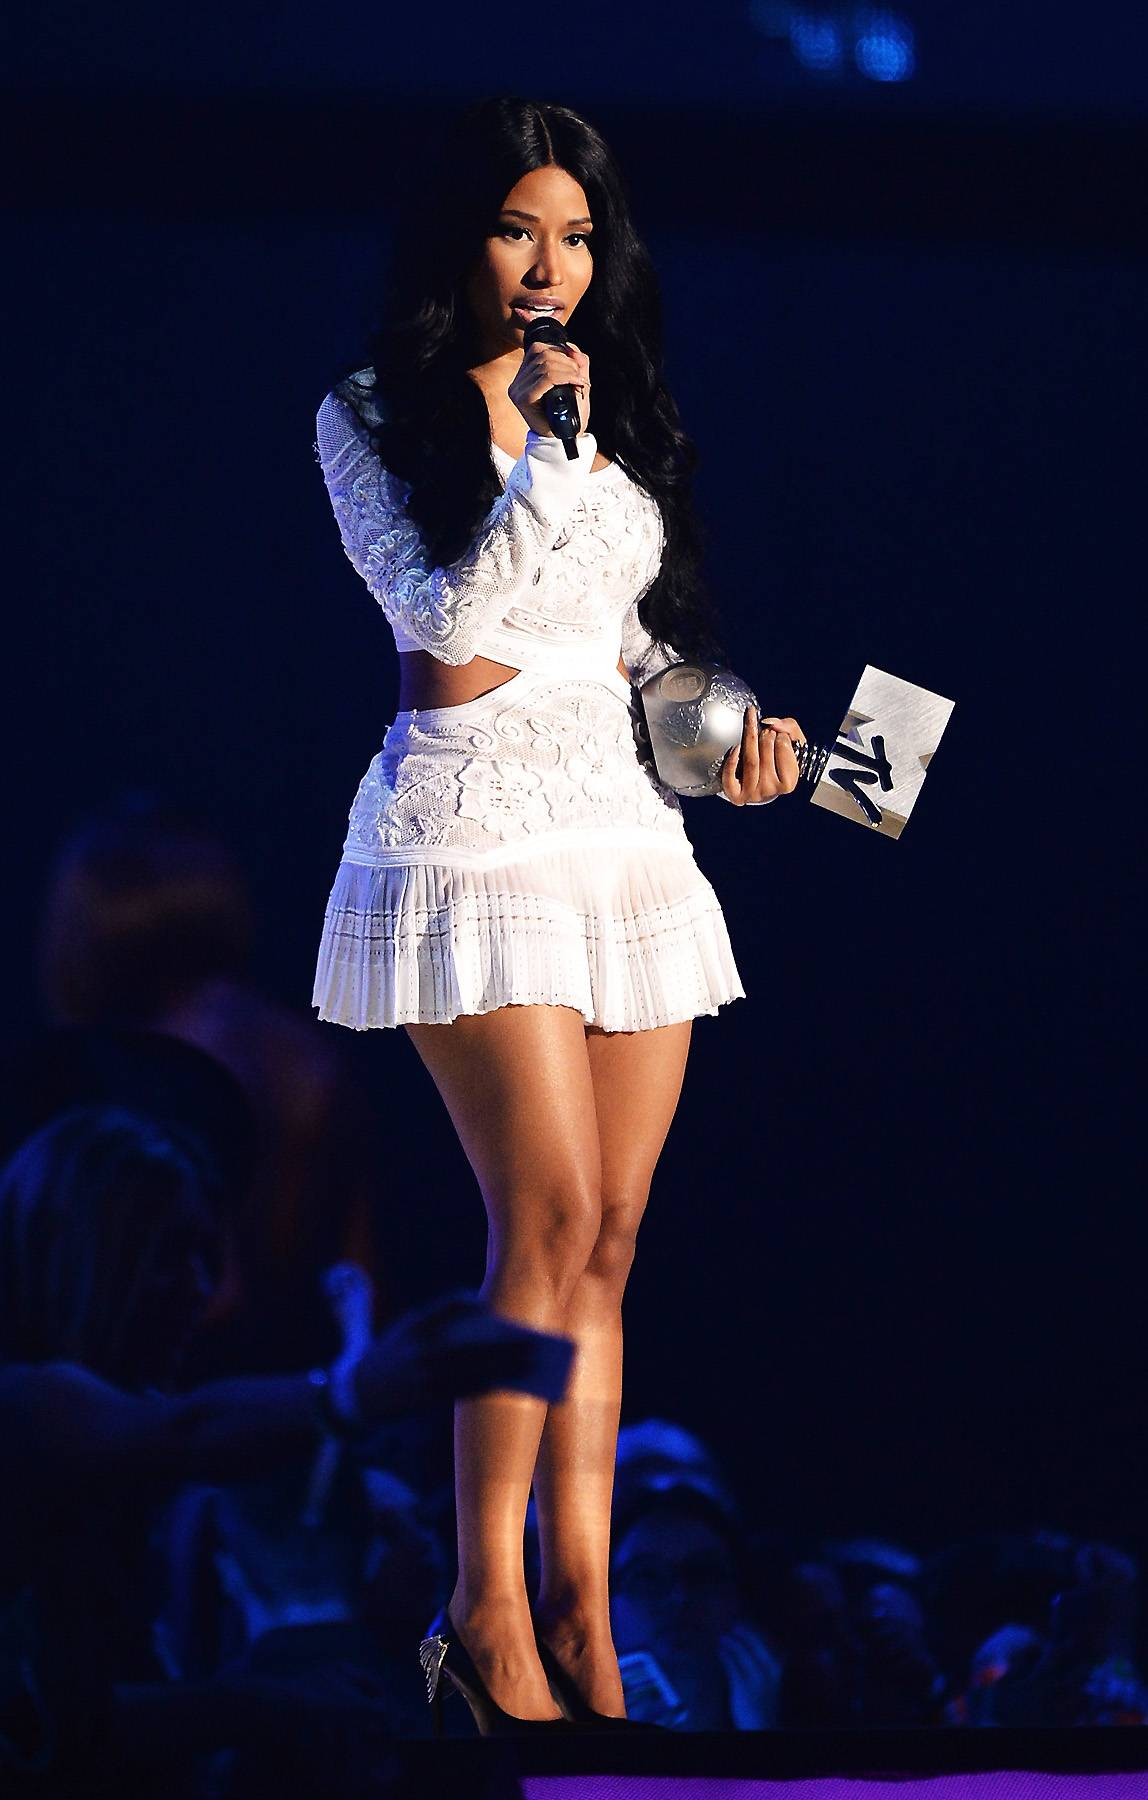 White Hot - Nicki wore another ivory mini, this one by Roberto Cavalli. It was a custom creation that featured a sheer pleated skirt, floral appliqu?s and cutouts at the waist. (Photo: Samir Hussein/Getty Images for MTV)